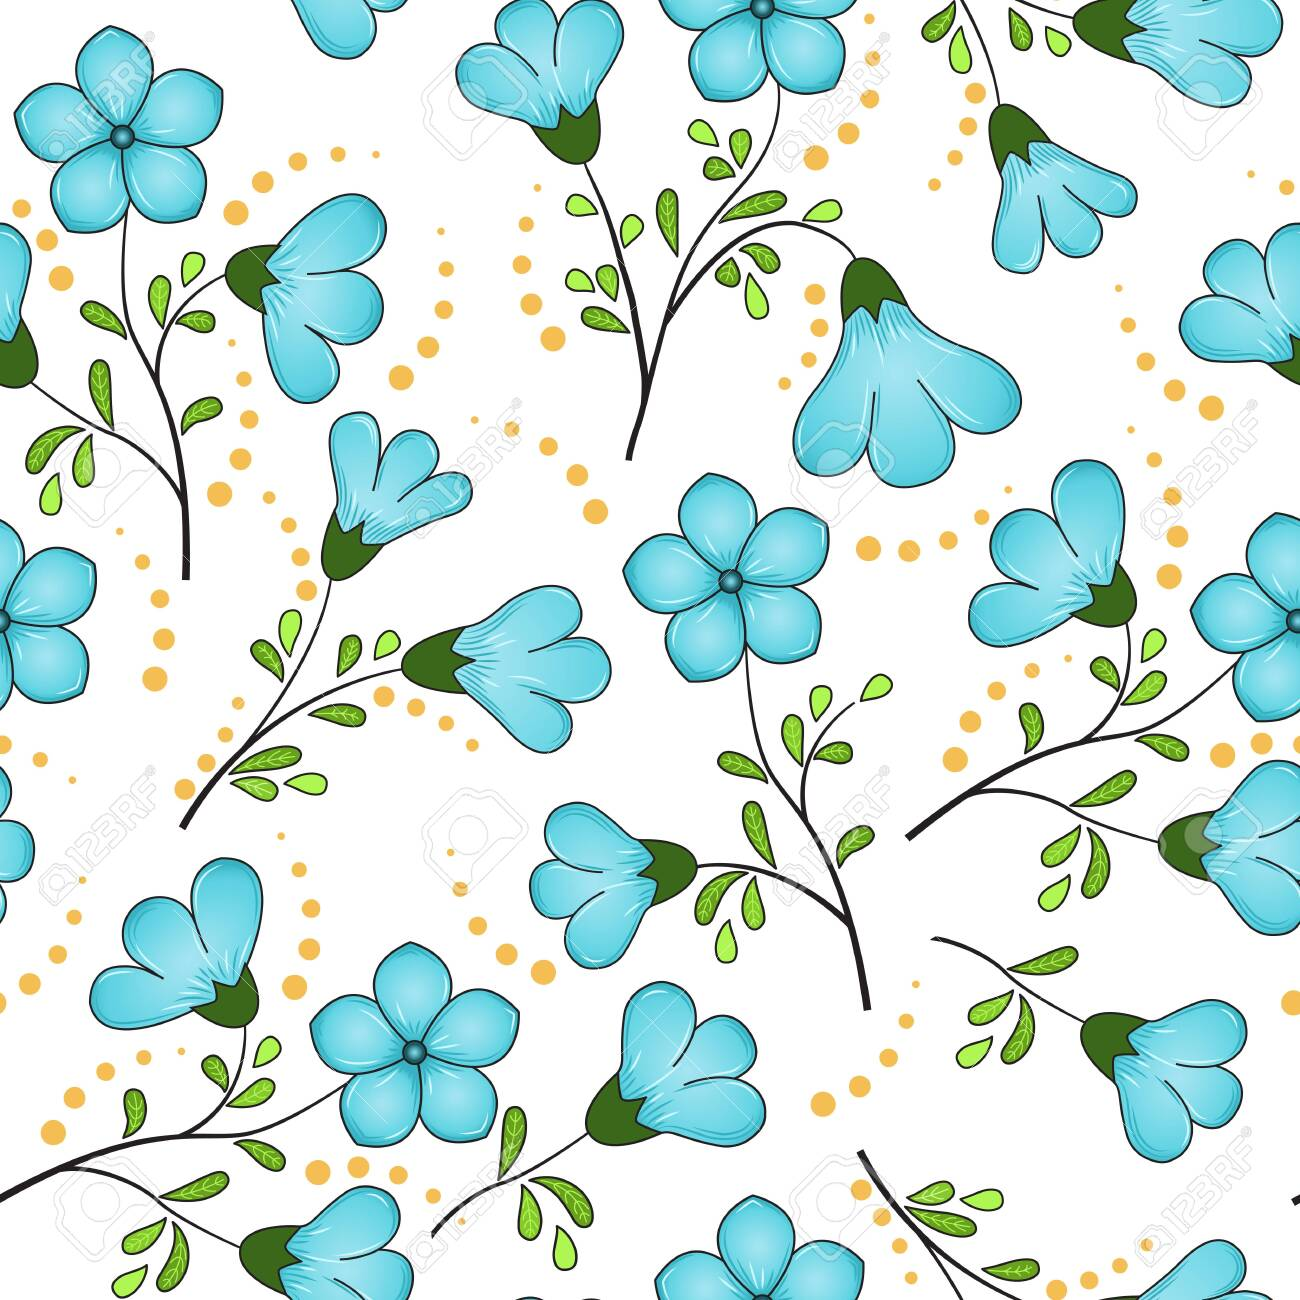 Seamless floral pattern of turquoise blue flax flowers, black twigs with yellow-green leaves, yellow dots, white background. The print is well suited for fabric decor, printed matter, or advertising. - 138759752